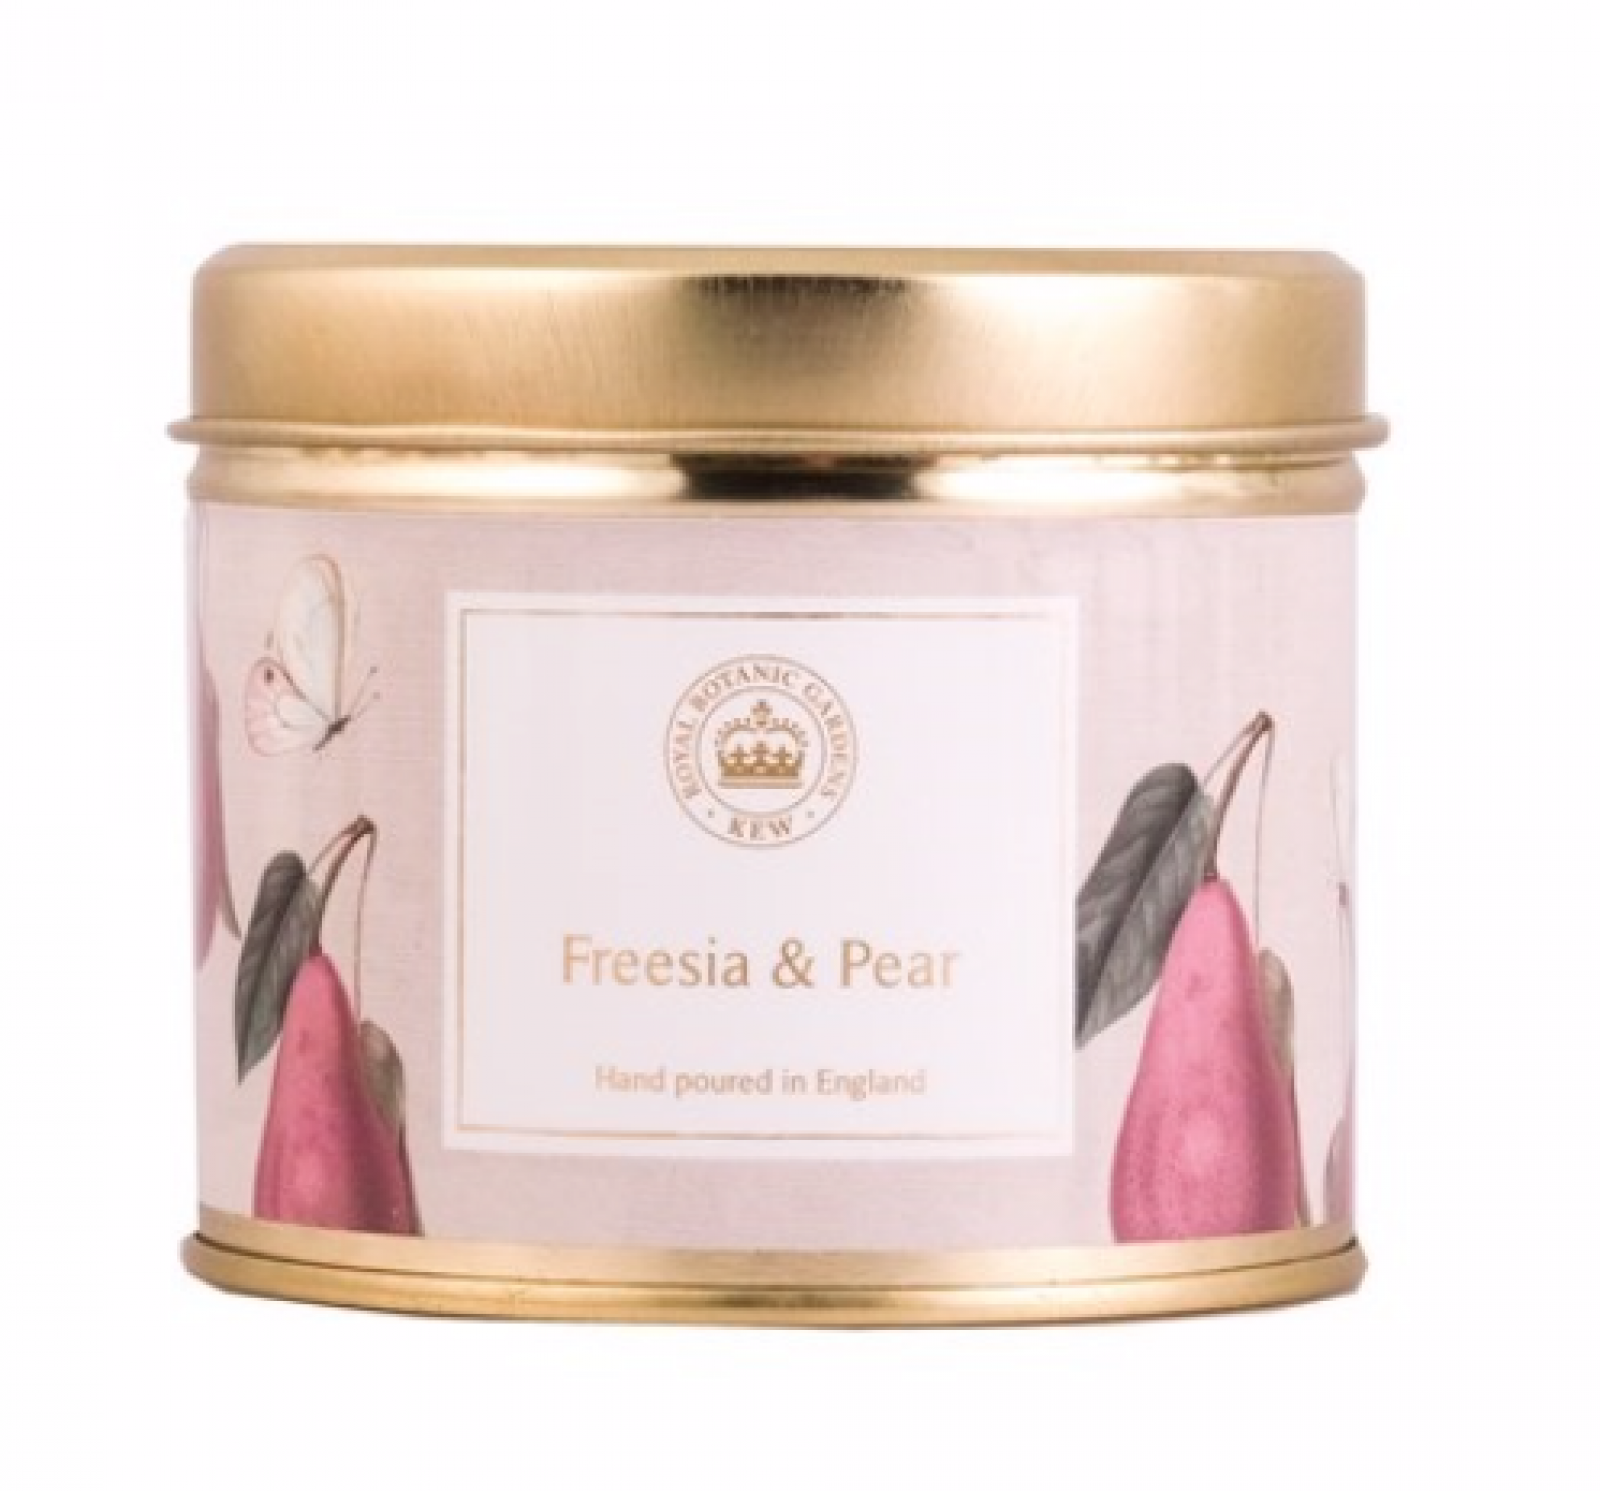 Freesia & Pear Candle Kew Aromatics Candle 160g